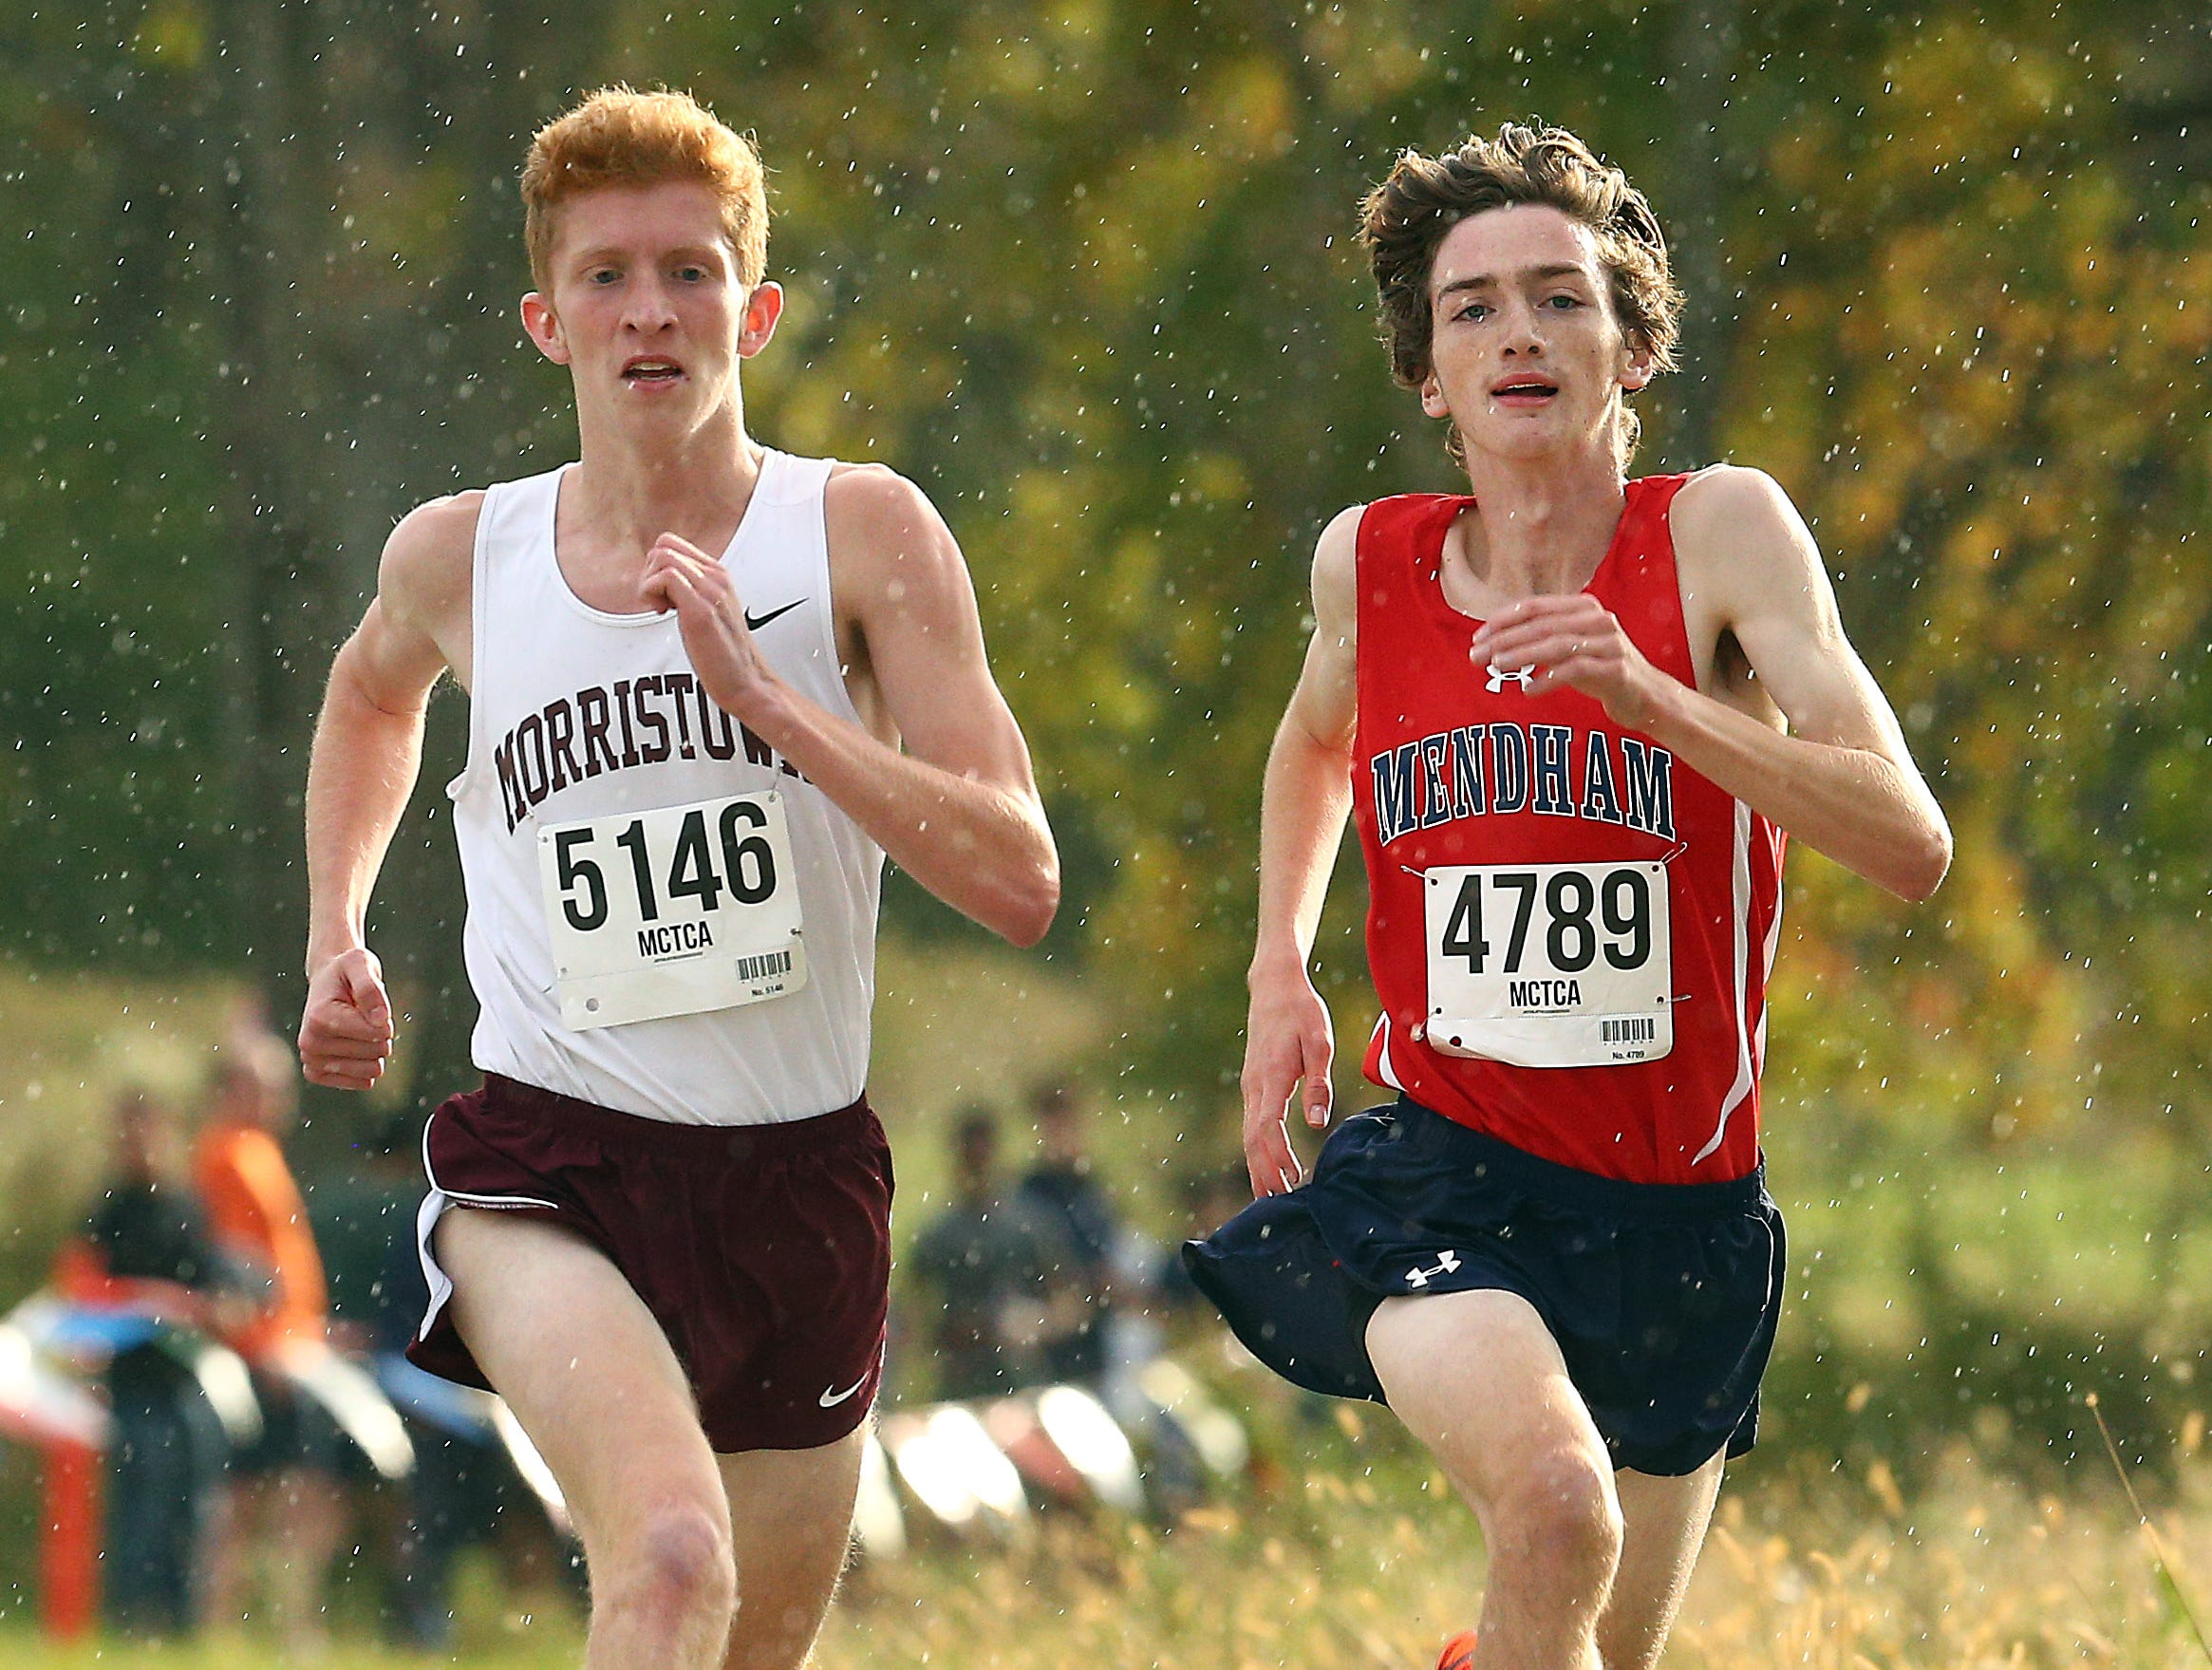 Morristown's Patrick Mullen and Mendham's Jack Jennings battle to the finish during the Morris County boys cross country championships at  Central Park of Morris County. October 23, 2018, Morris Plains, NJ